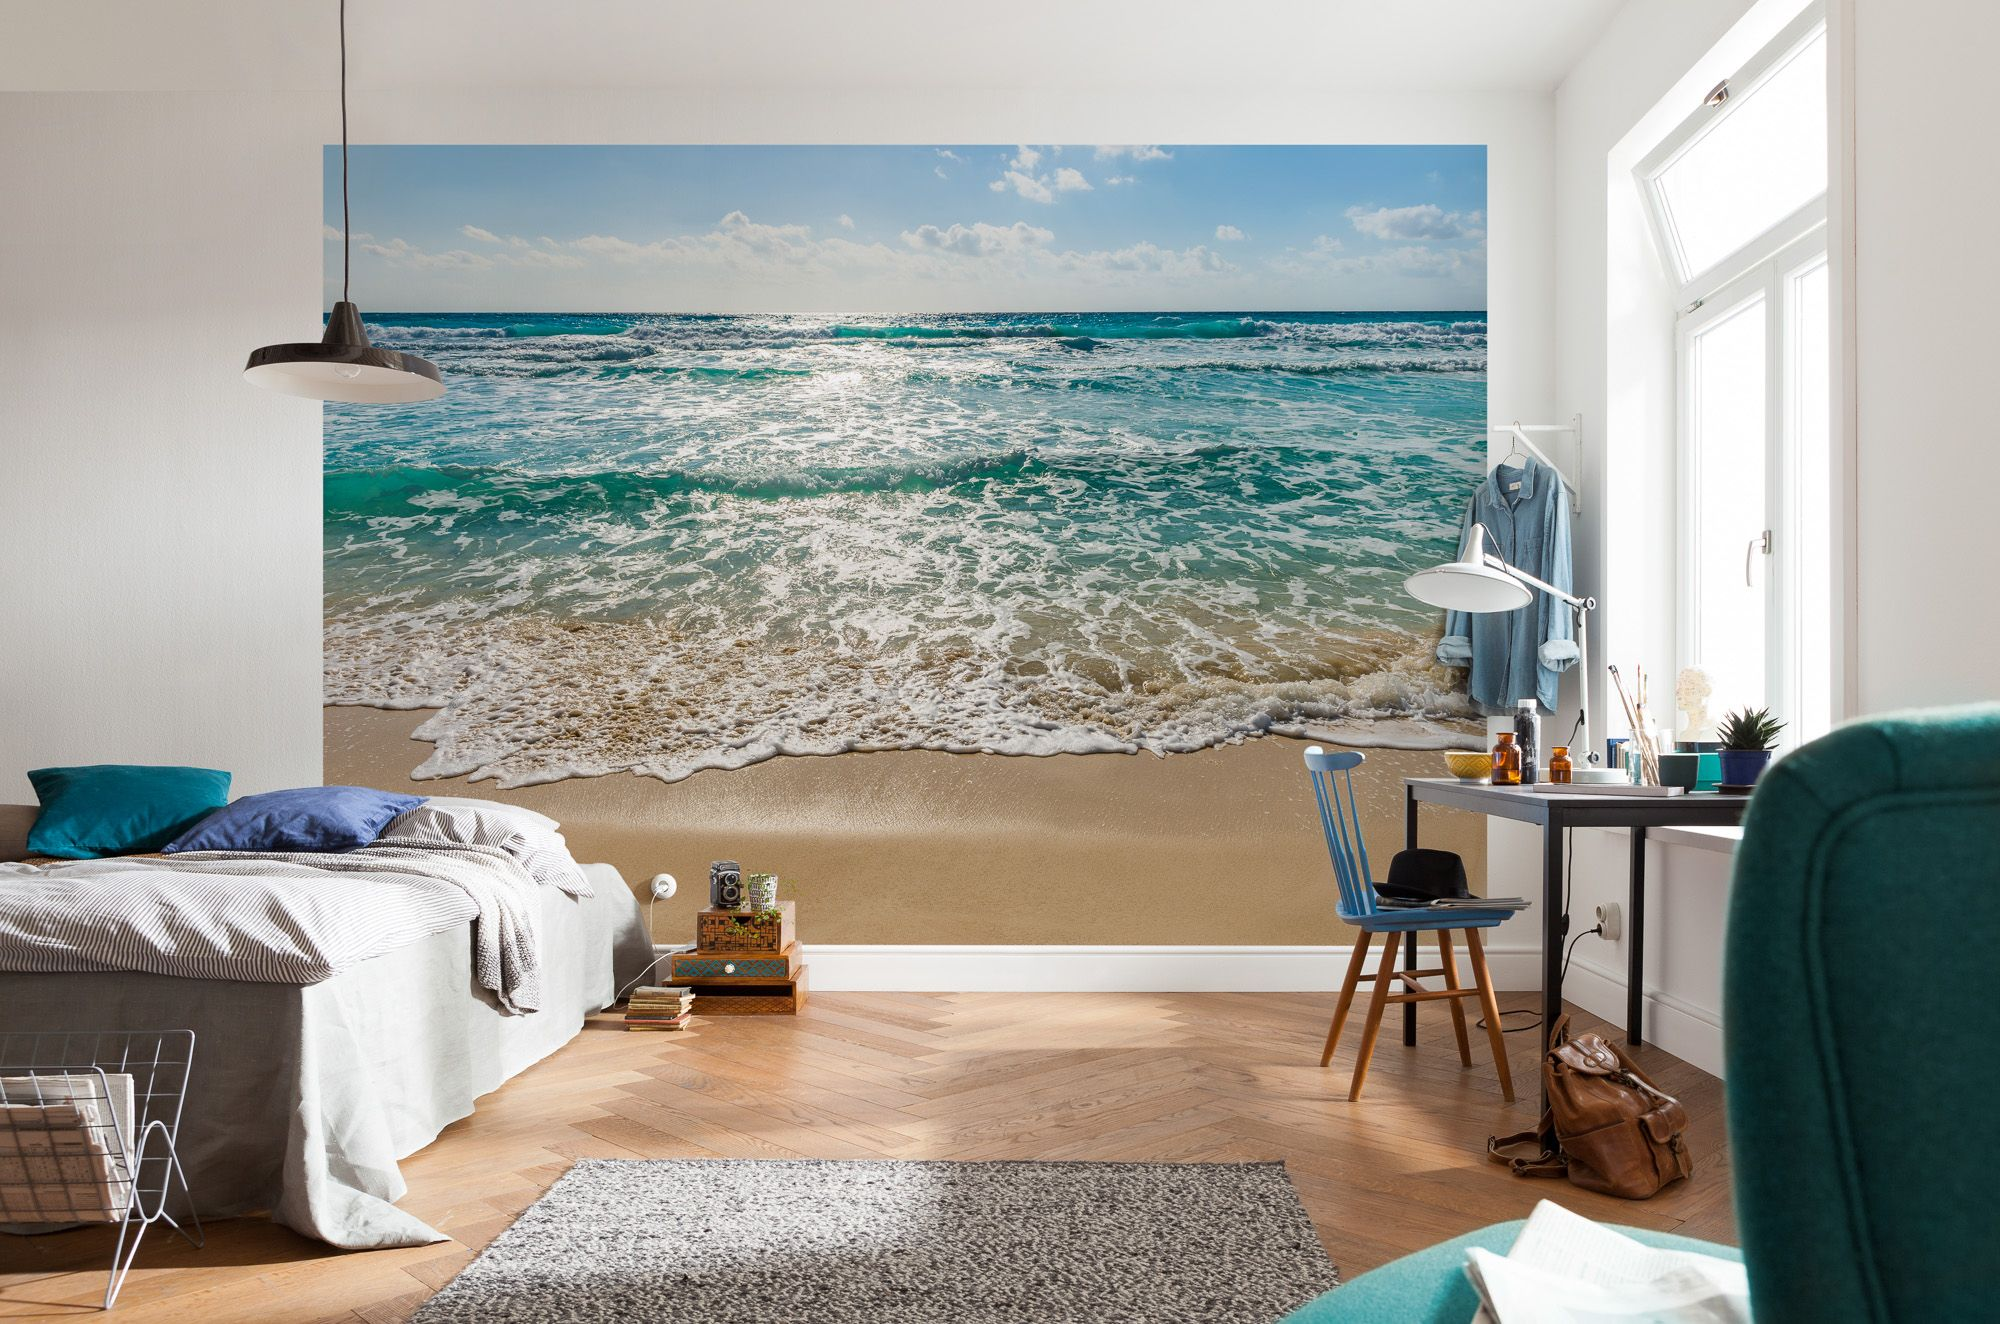 seaside beach scene paper wallpaper homewallmurals. Black Bedroom Furniture Sets. Home Design Ideas